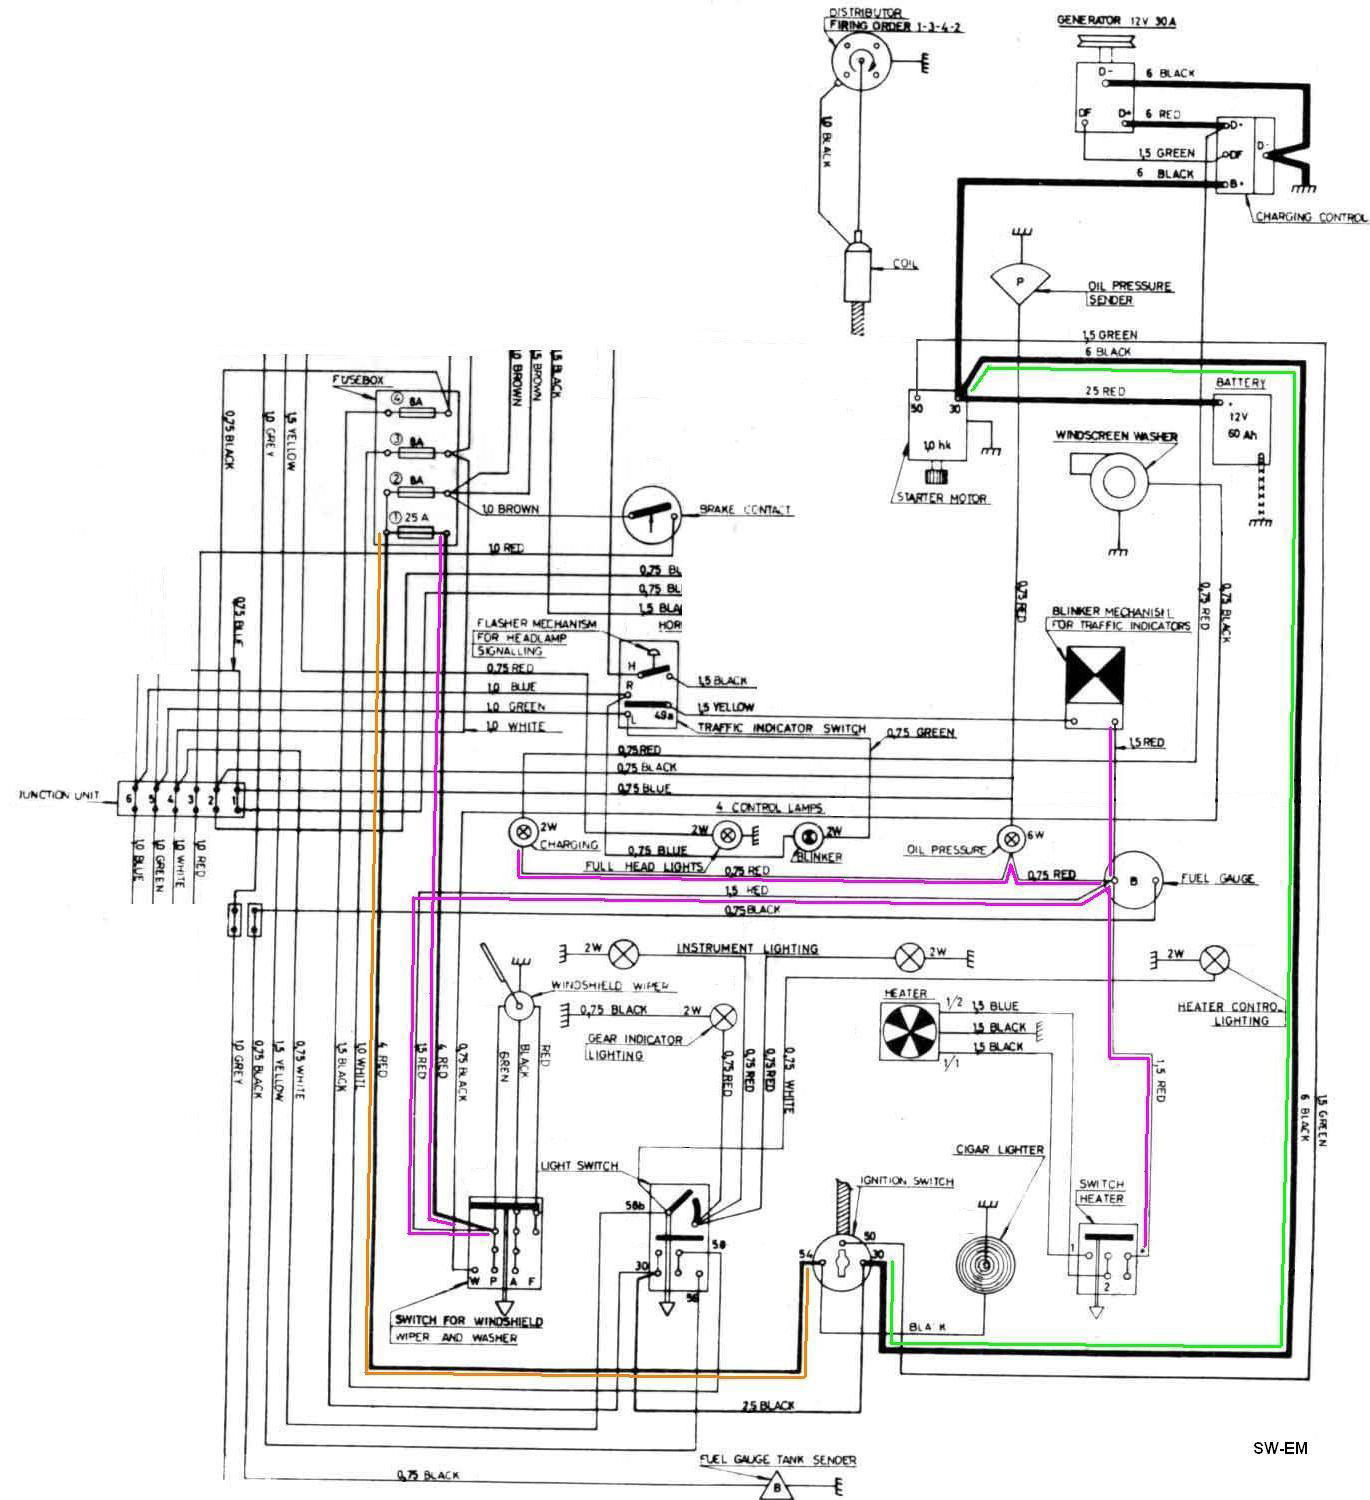 Volvo 850 Ignition Wiring Diagram : S volvo coil wiring diagram exhaust